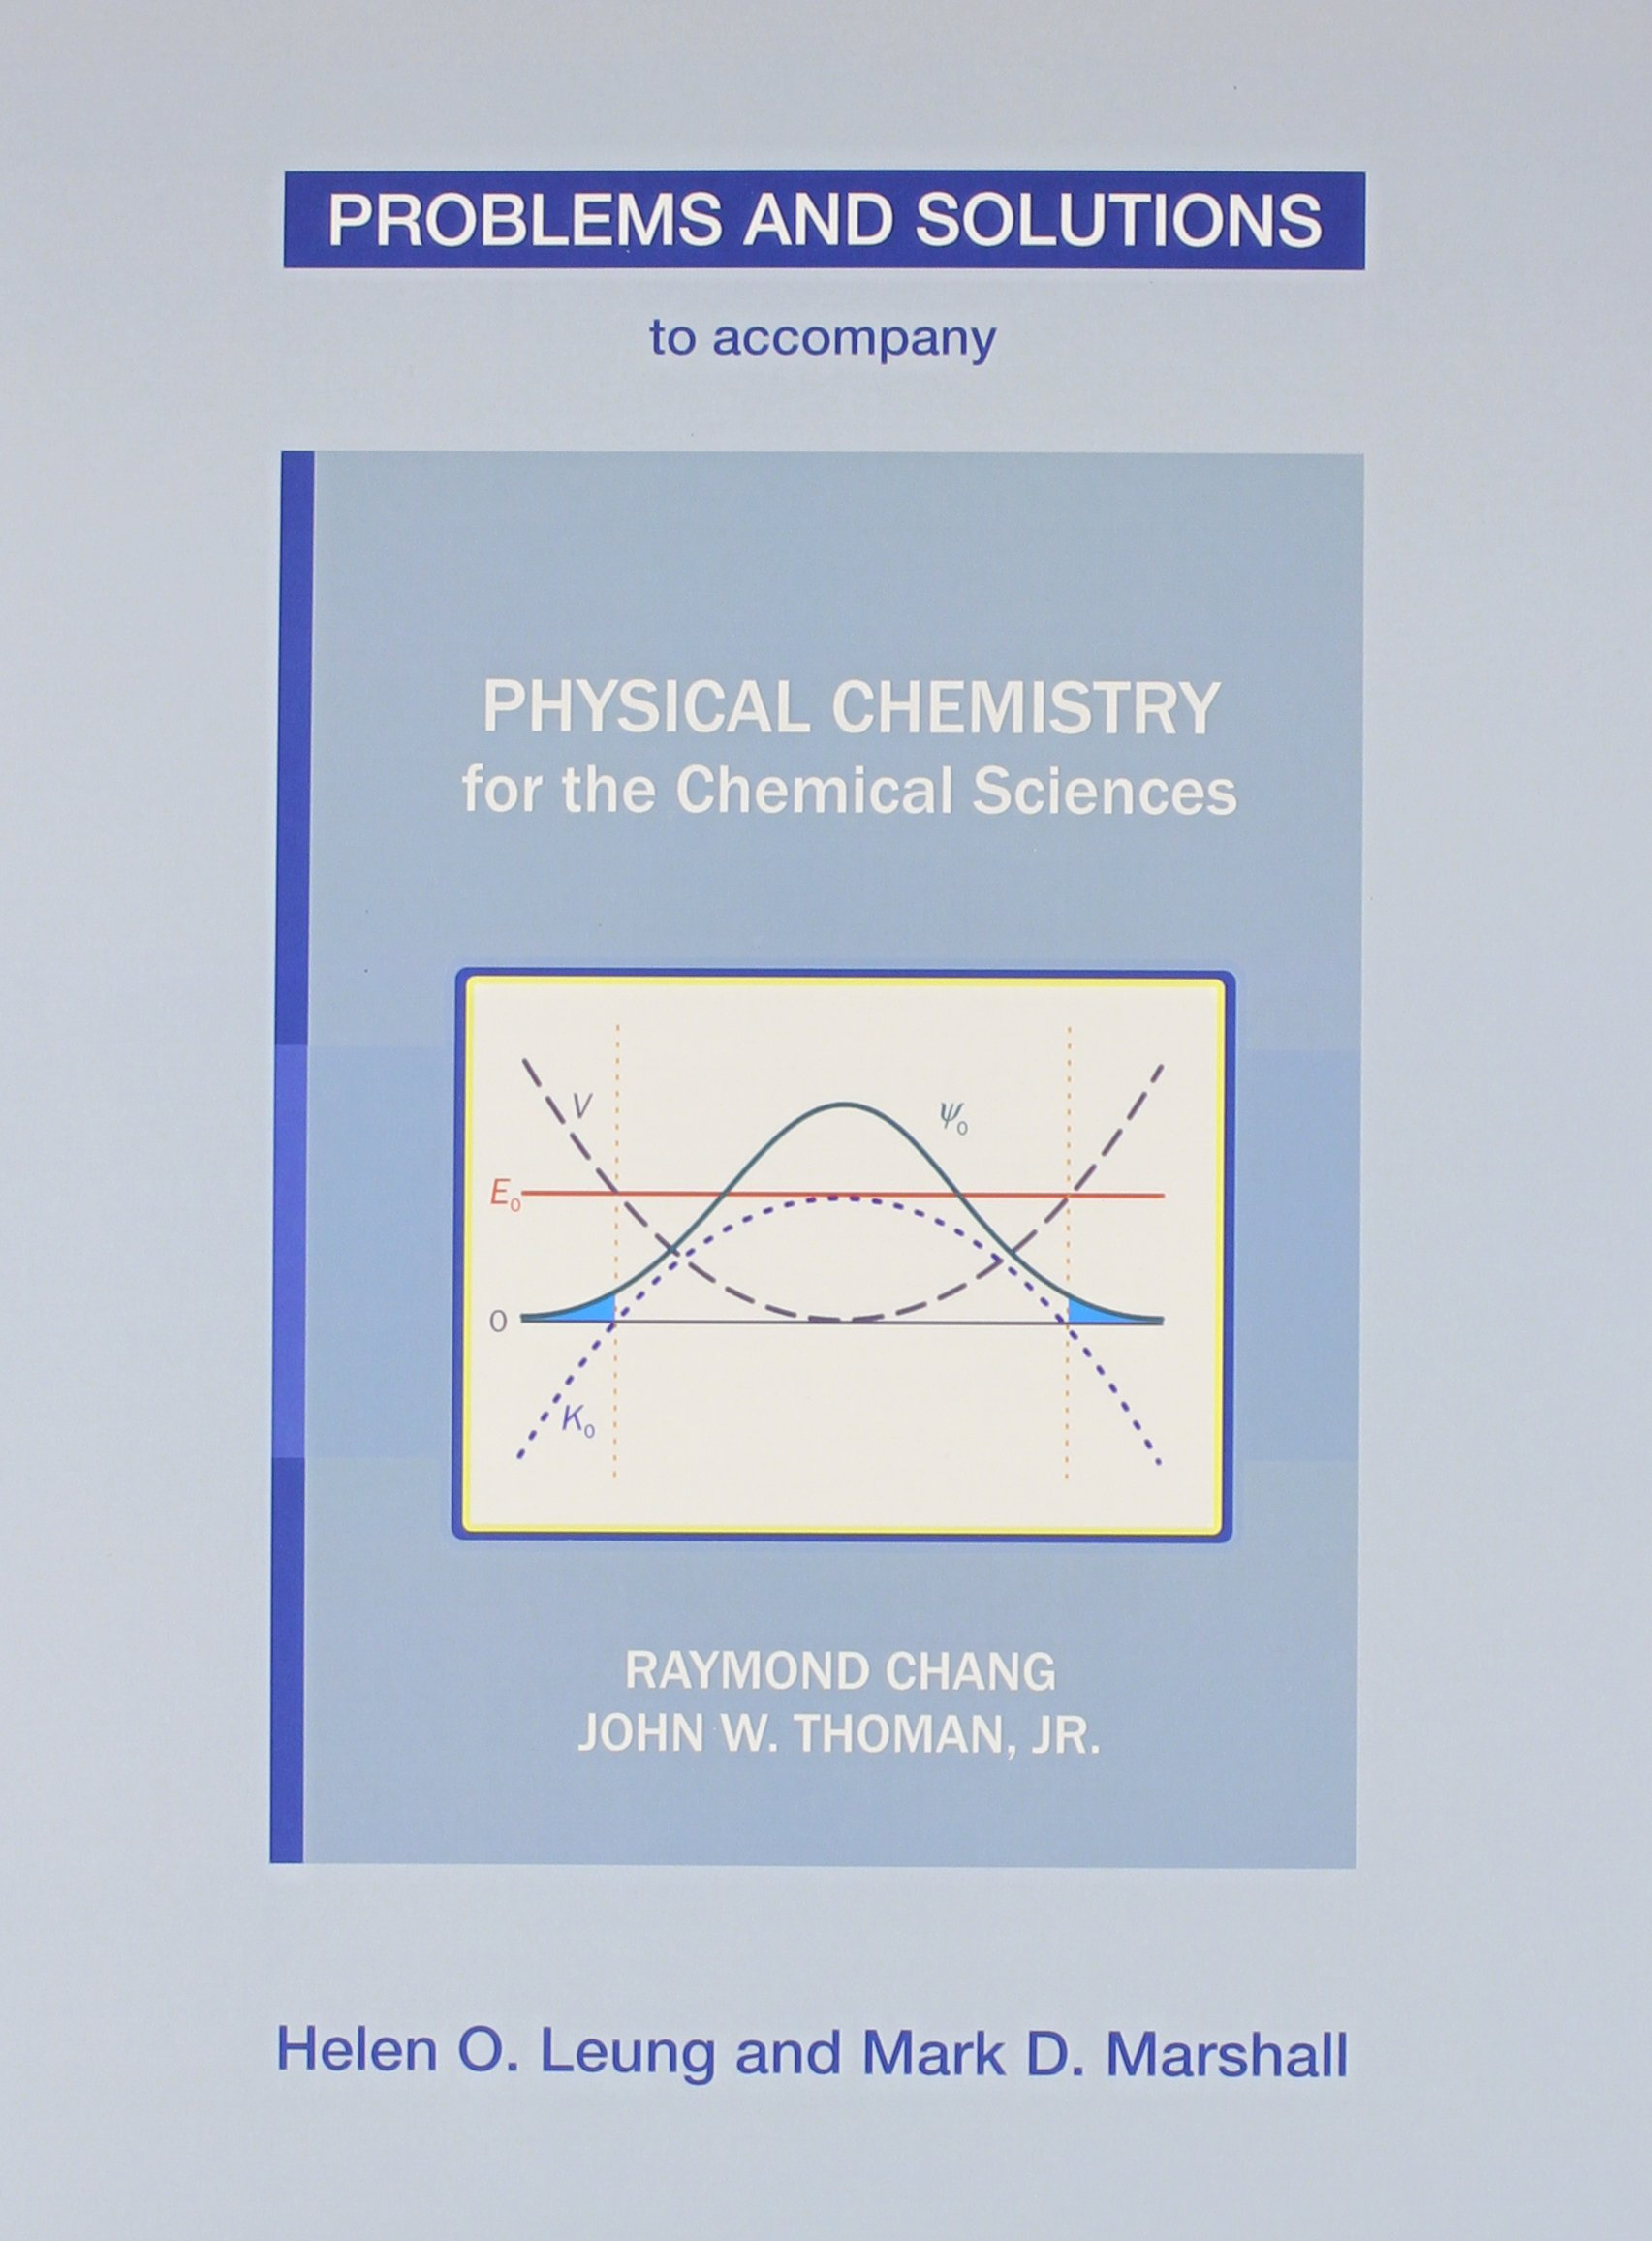 Problems and Solutions to Accompany Physical Chemistry for the Chemical  Sciences by Chang & Thoman: Helen O Leung, Mark D Marshall: 9781938787690:  Books ...